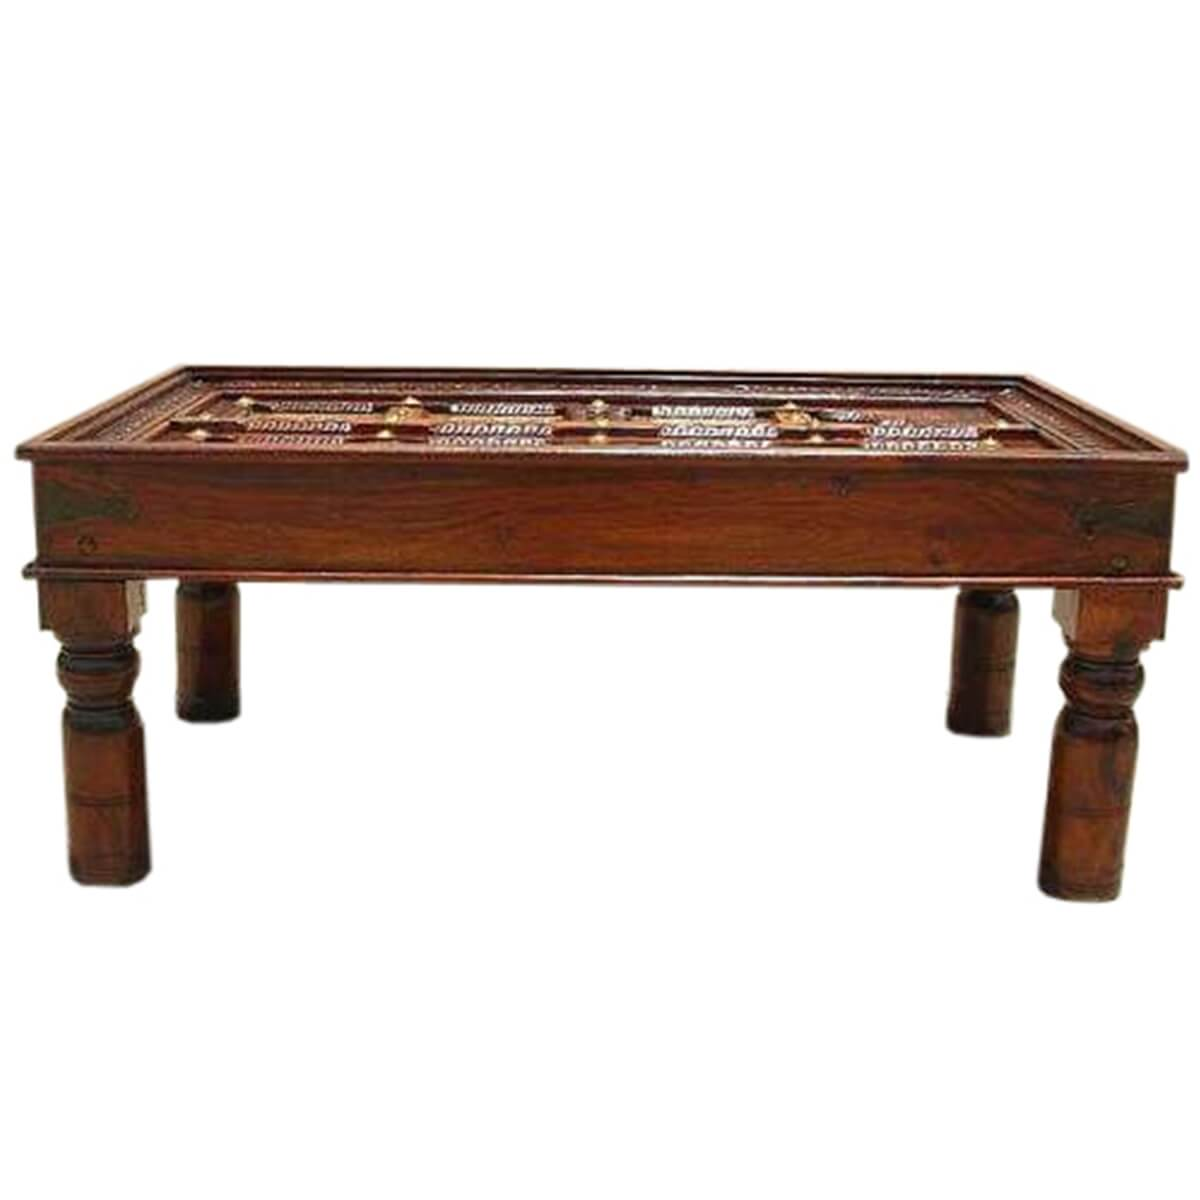 Pasco Handcrafted Royal Door Table Top Mango Wood Coffee Table